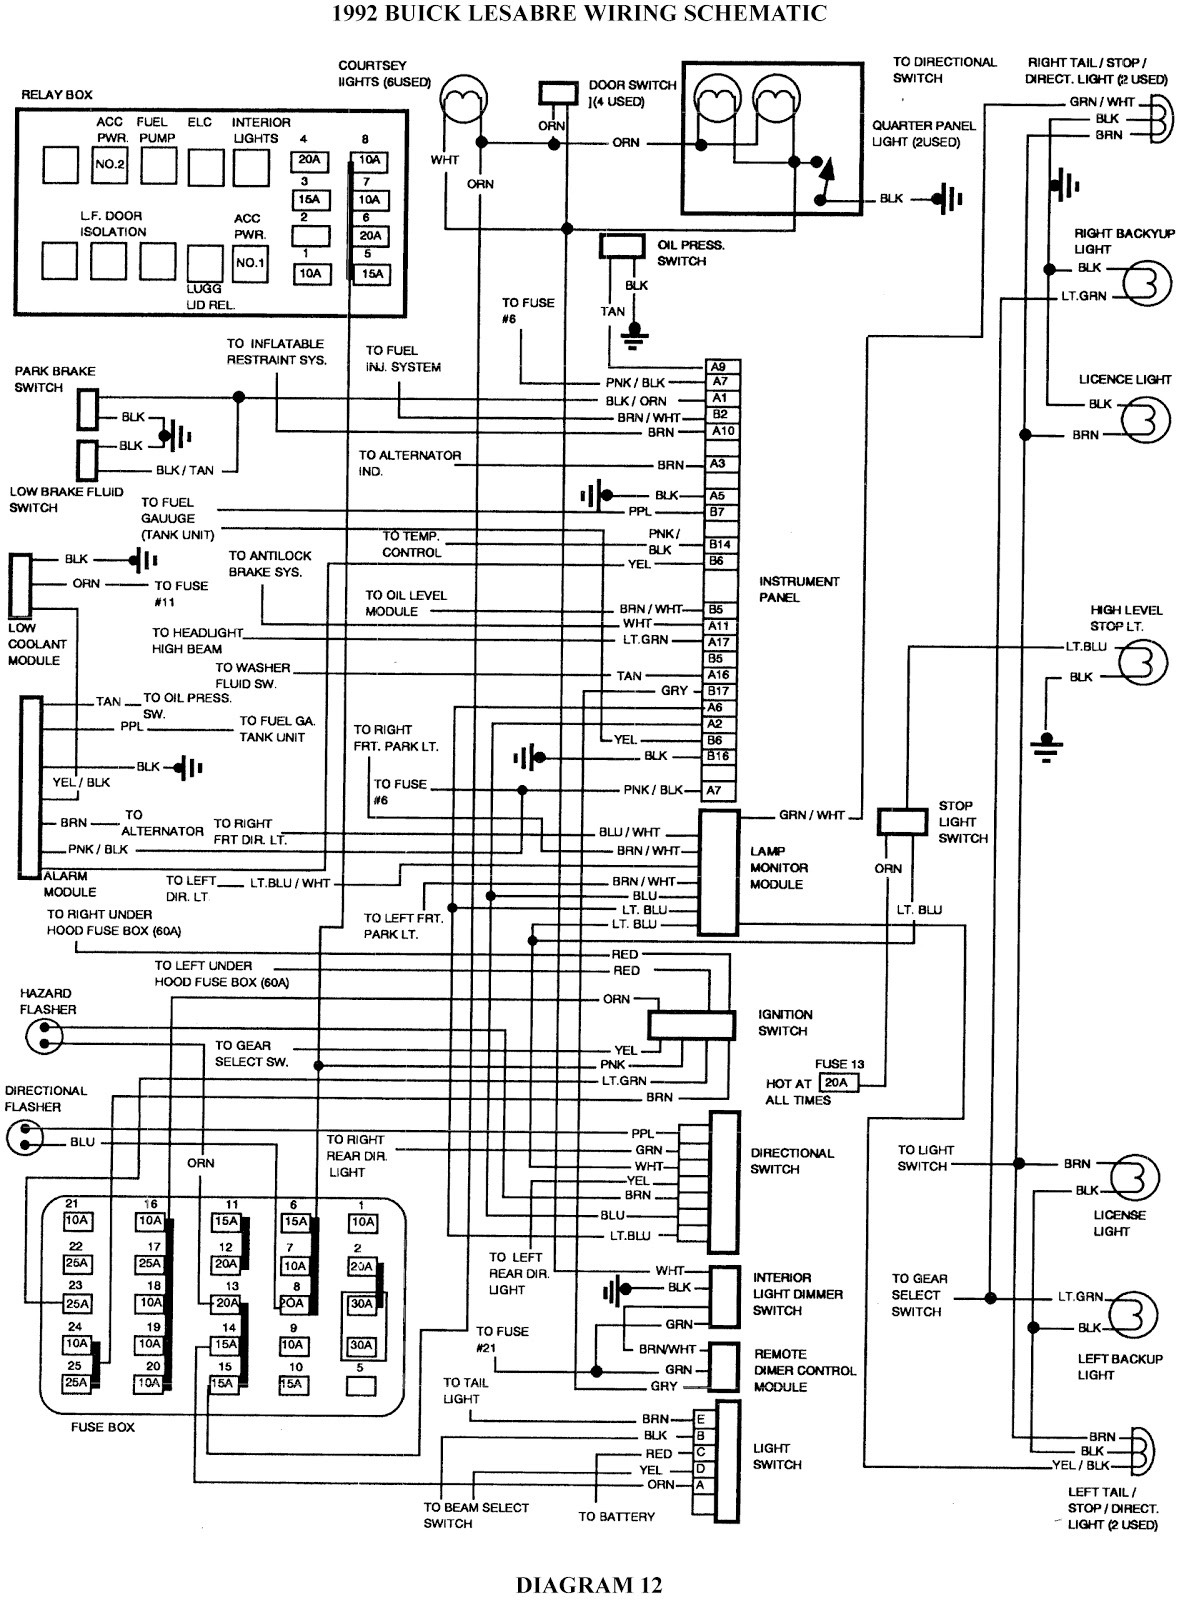 wiring harness diagram on 92 buick lesabre starter wiring diagram